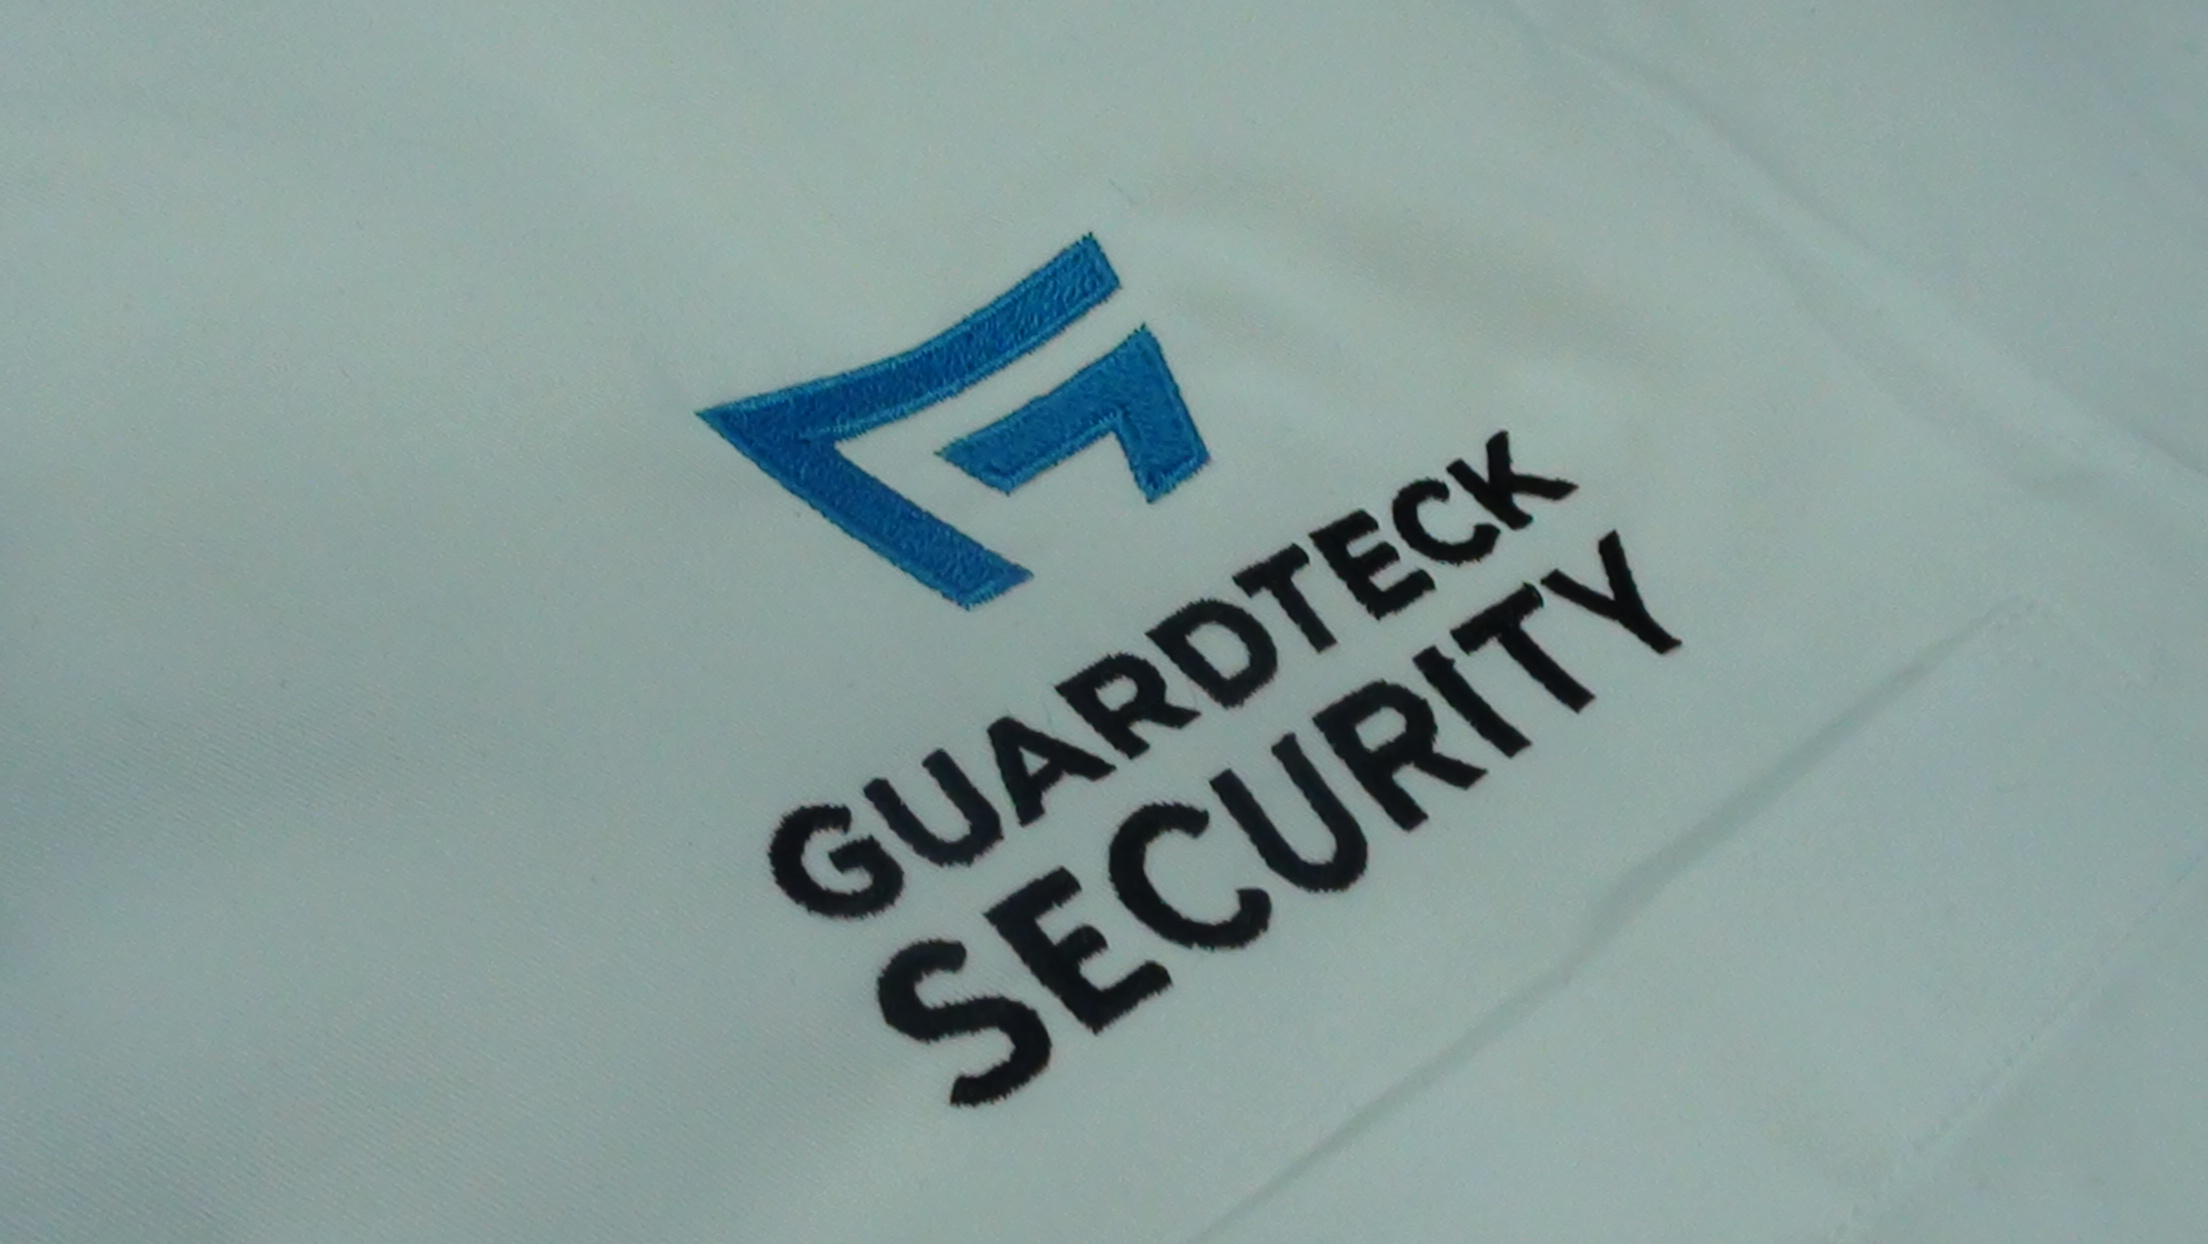 Guardteck logo